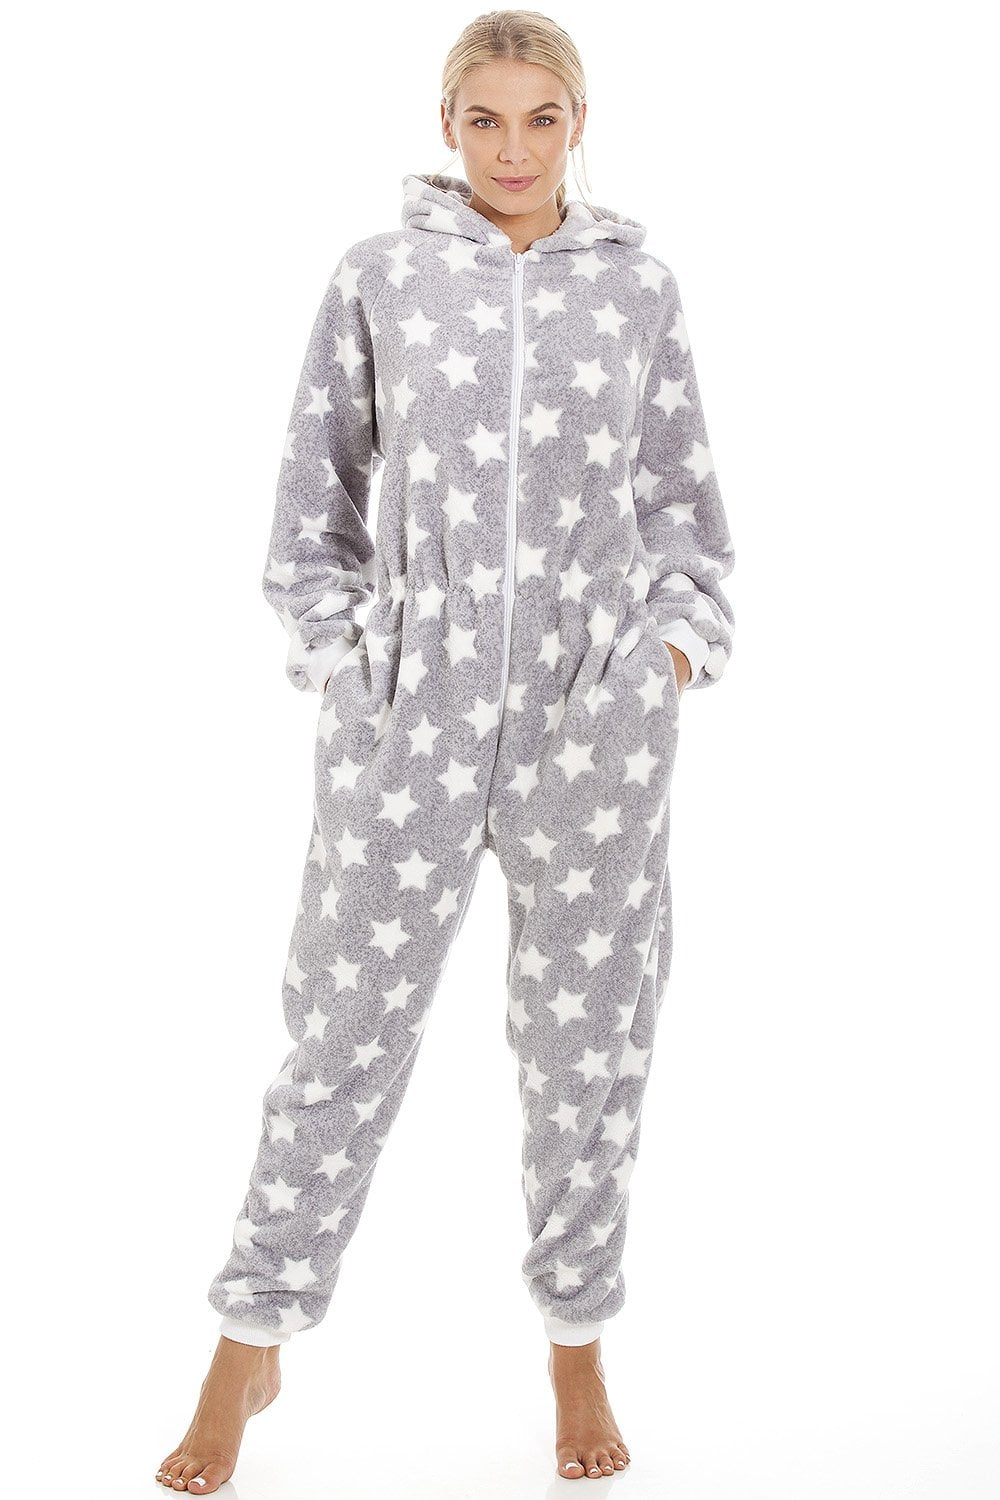 1c50c5e4c9 Camille Womens Soft Fleece White Star Print Light Grey Onesie